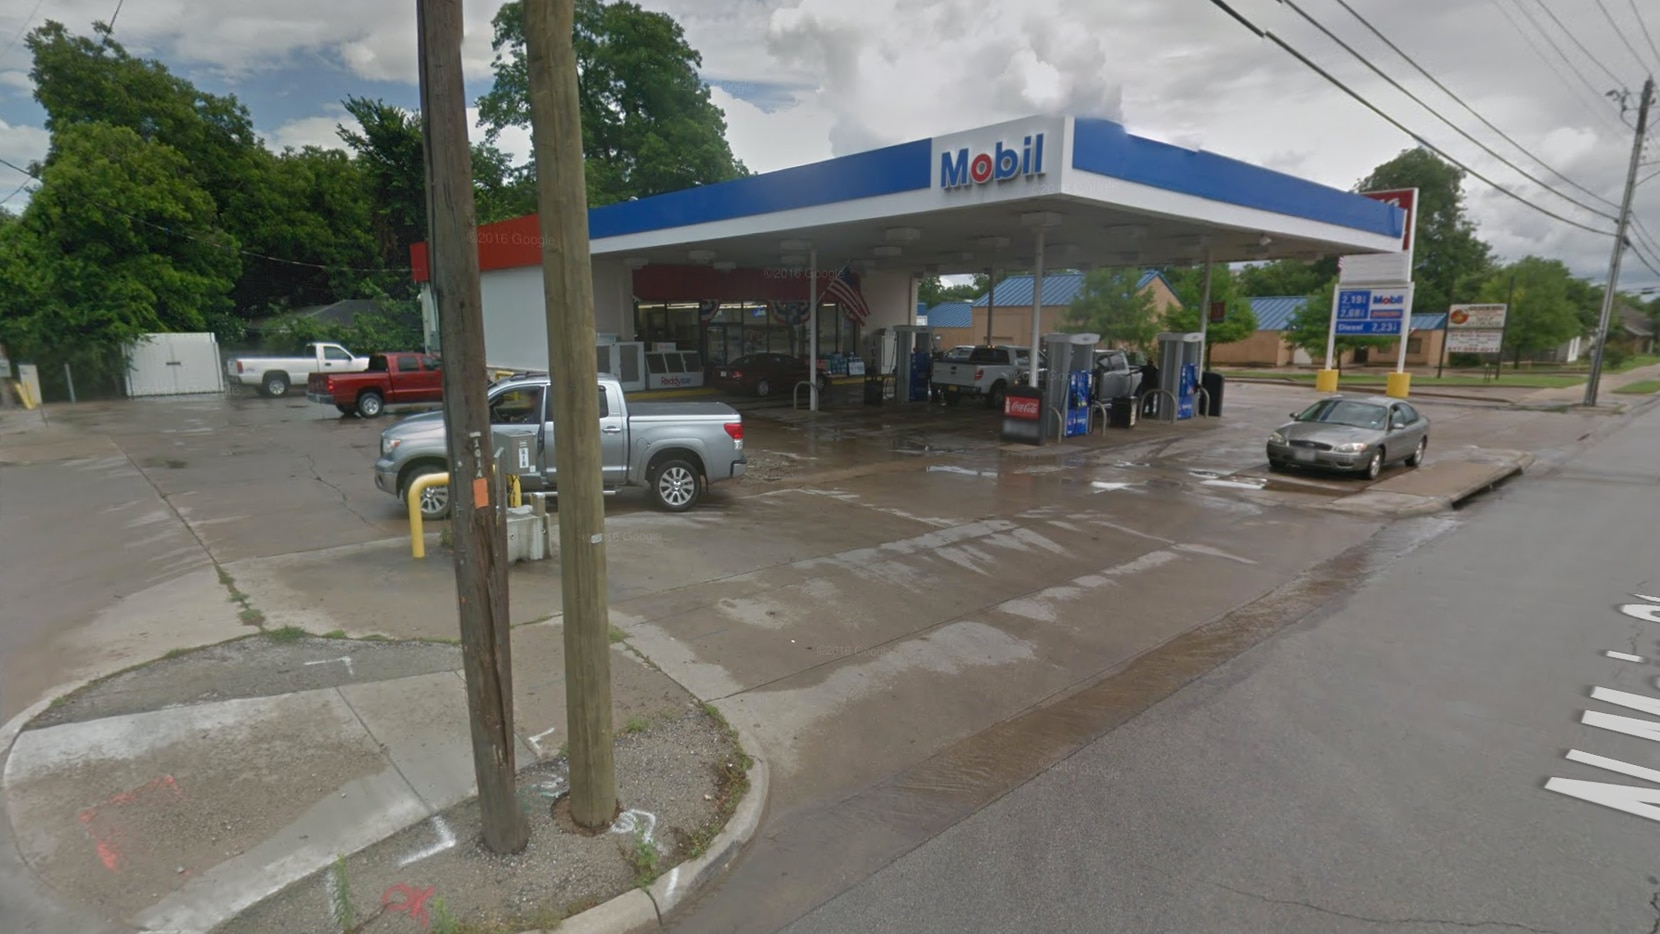 The Mobil gas station where Sneed and Mack were arrested.